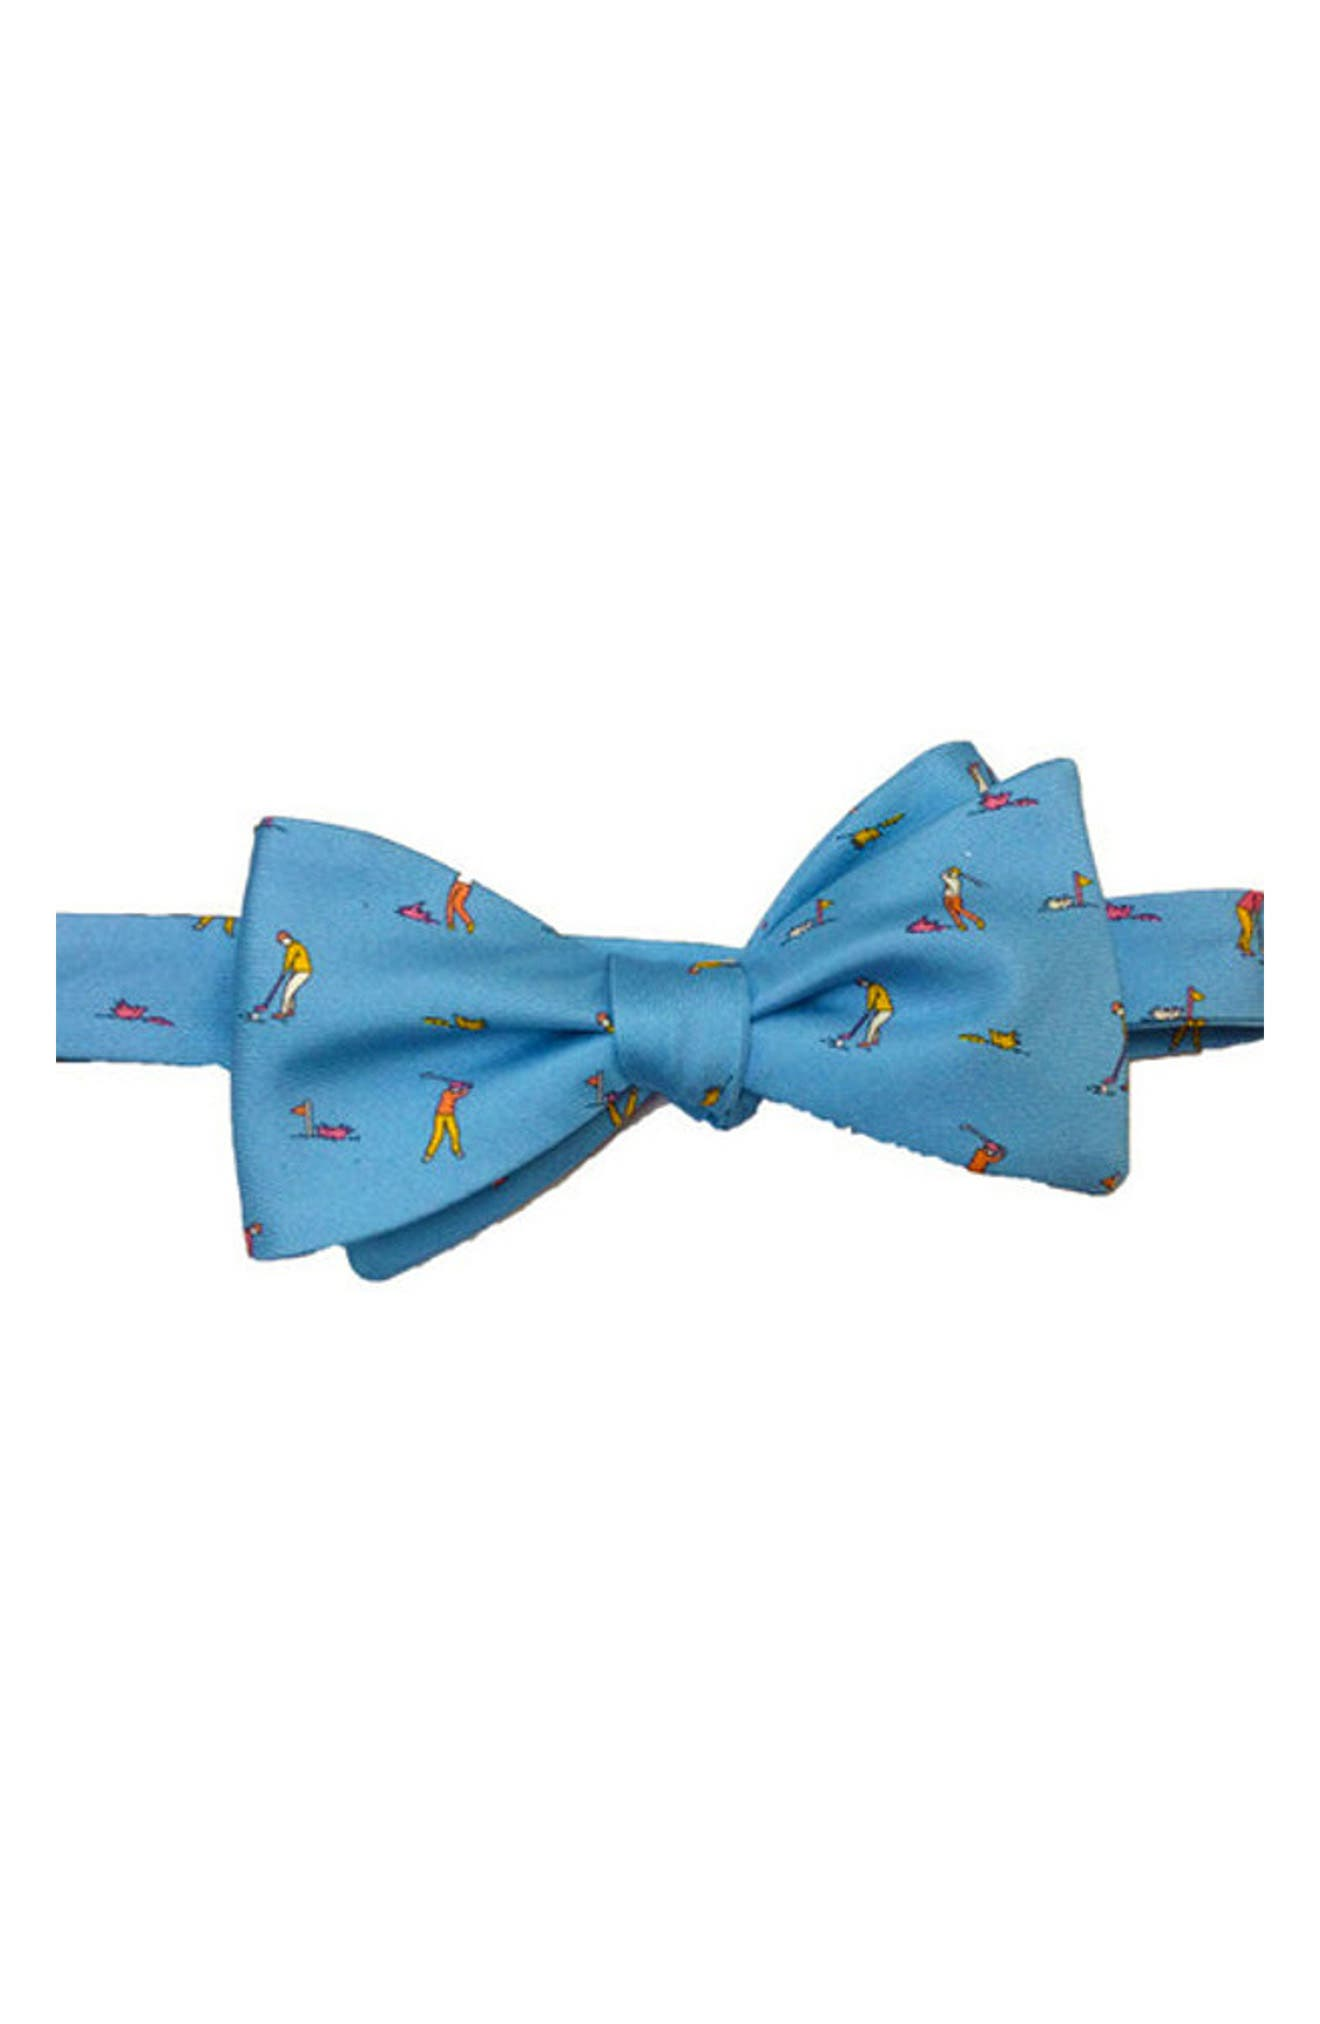 Foreplay Silk Bow Tie,                             Main thumbnail 1, color,                             Light Blue